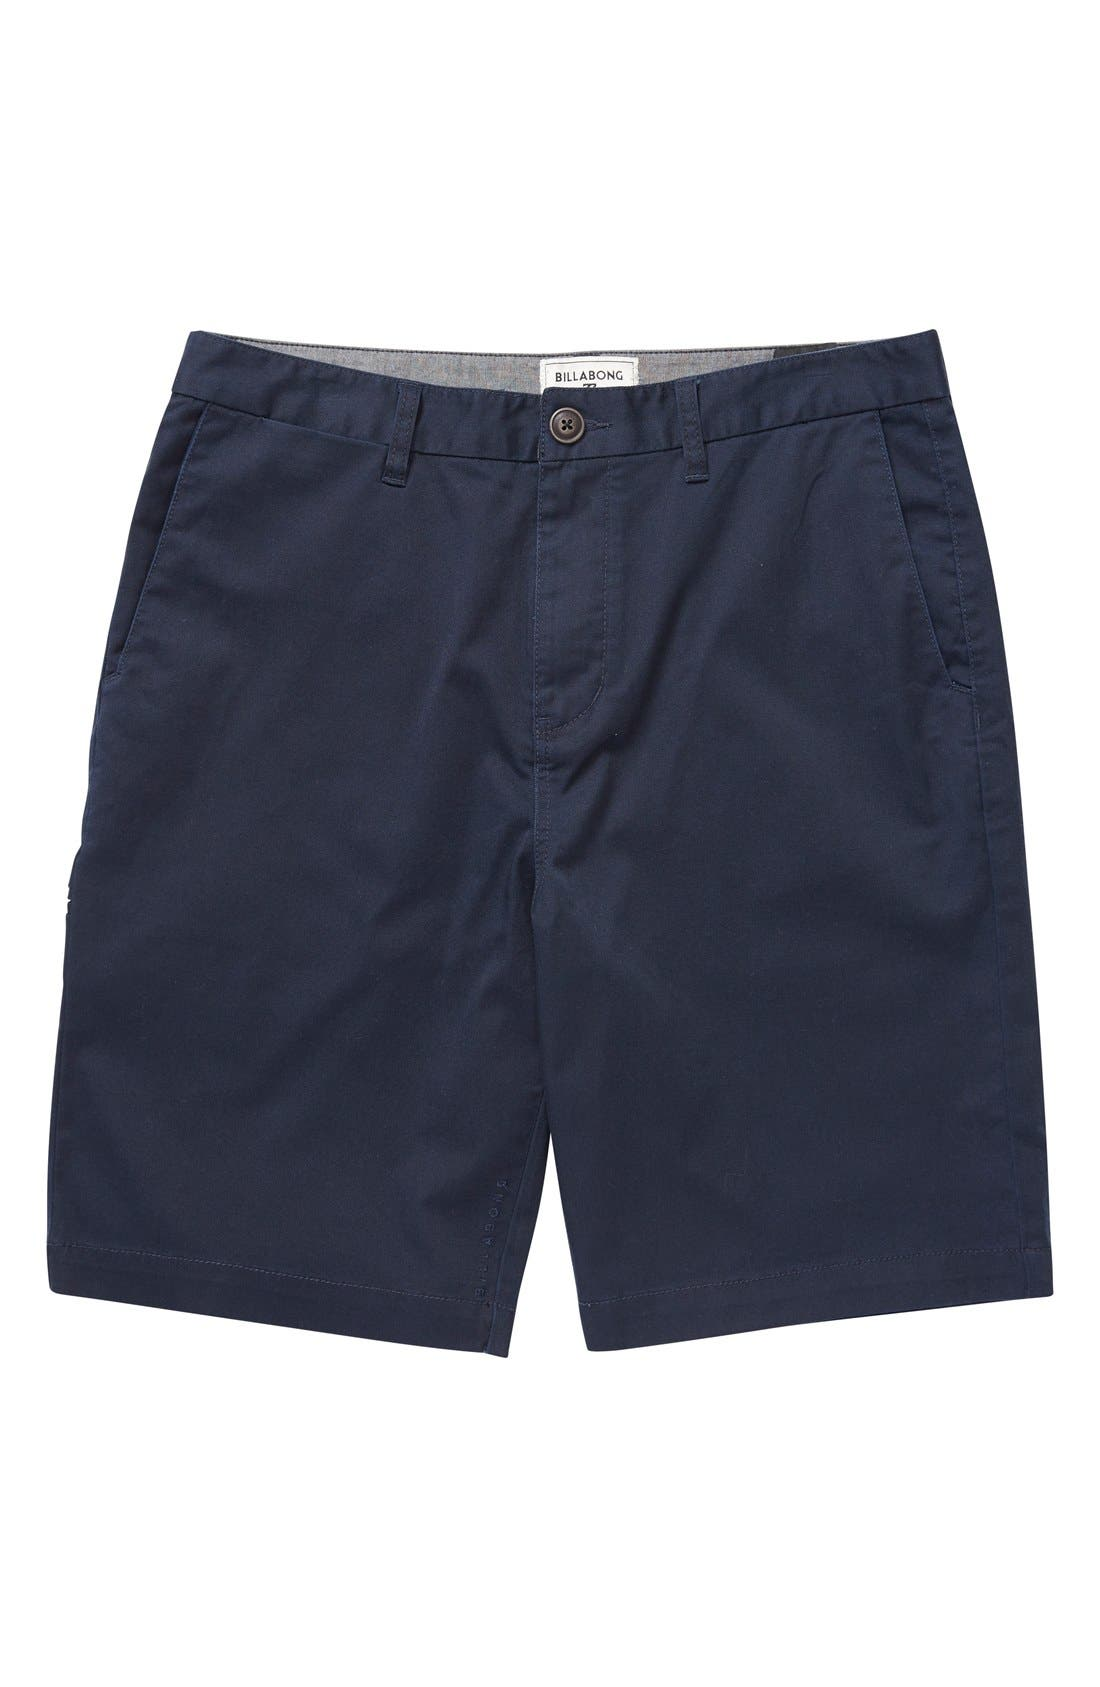 'Carter' Cotton Twill Shorts,                         Main,                         color, Navy